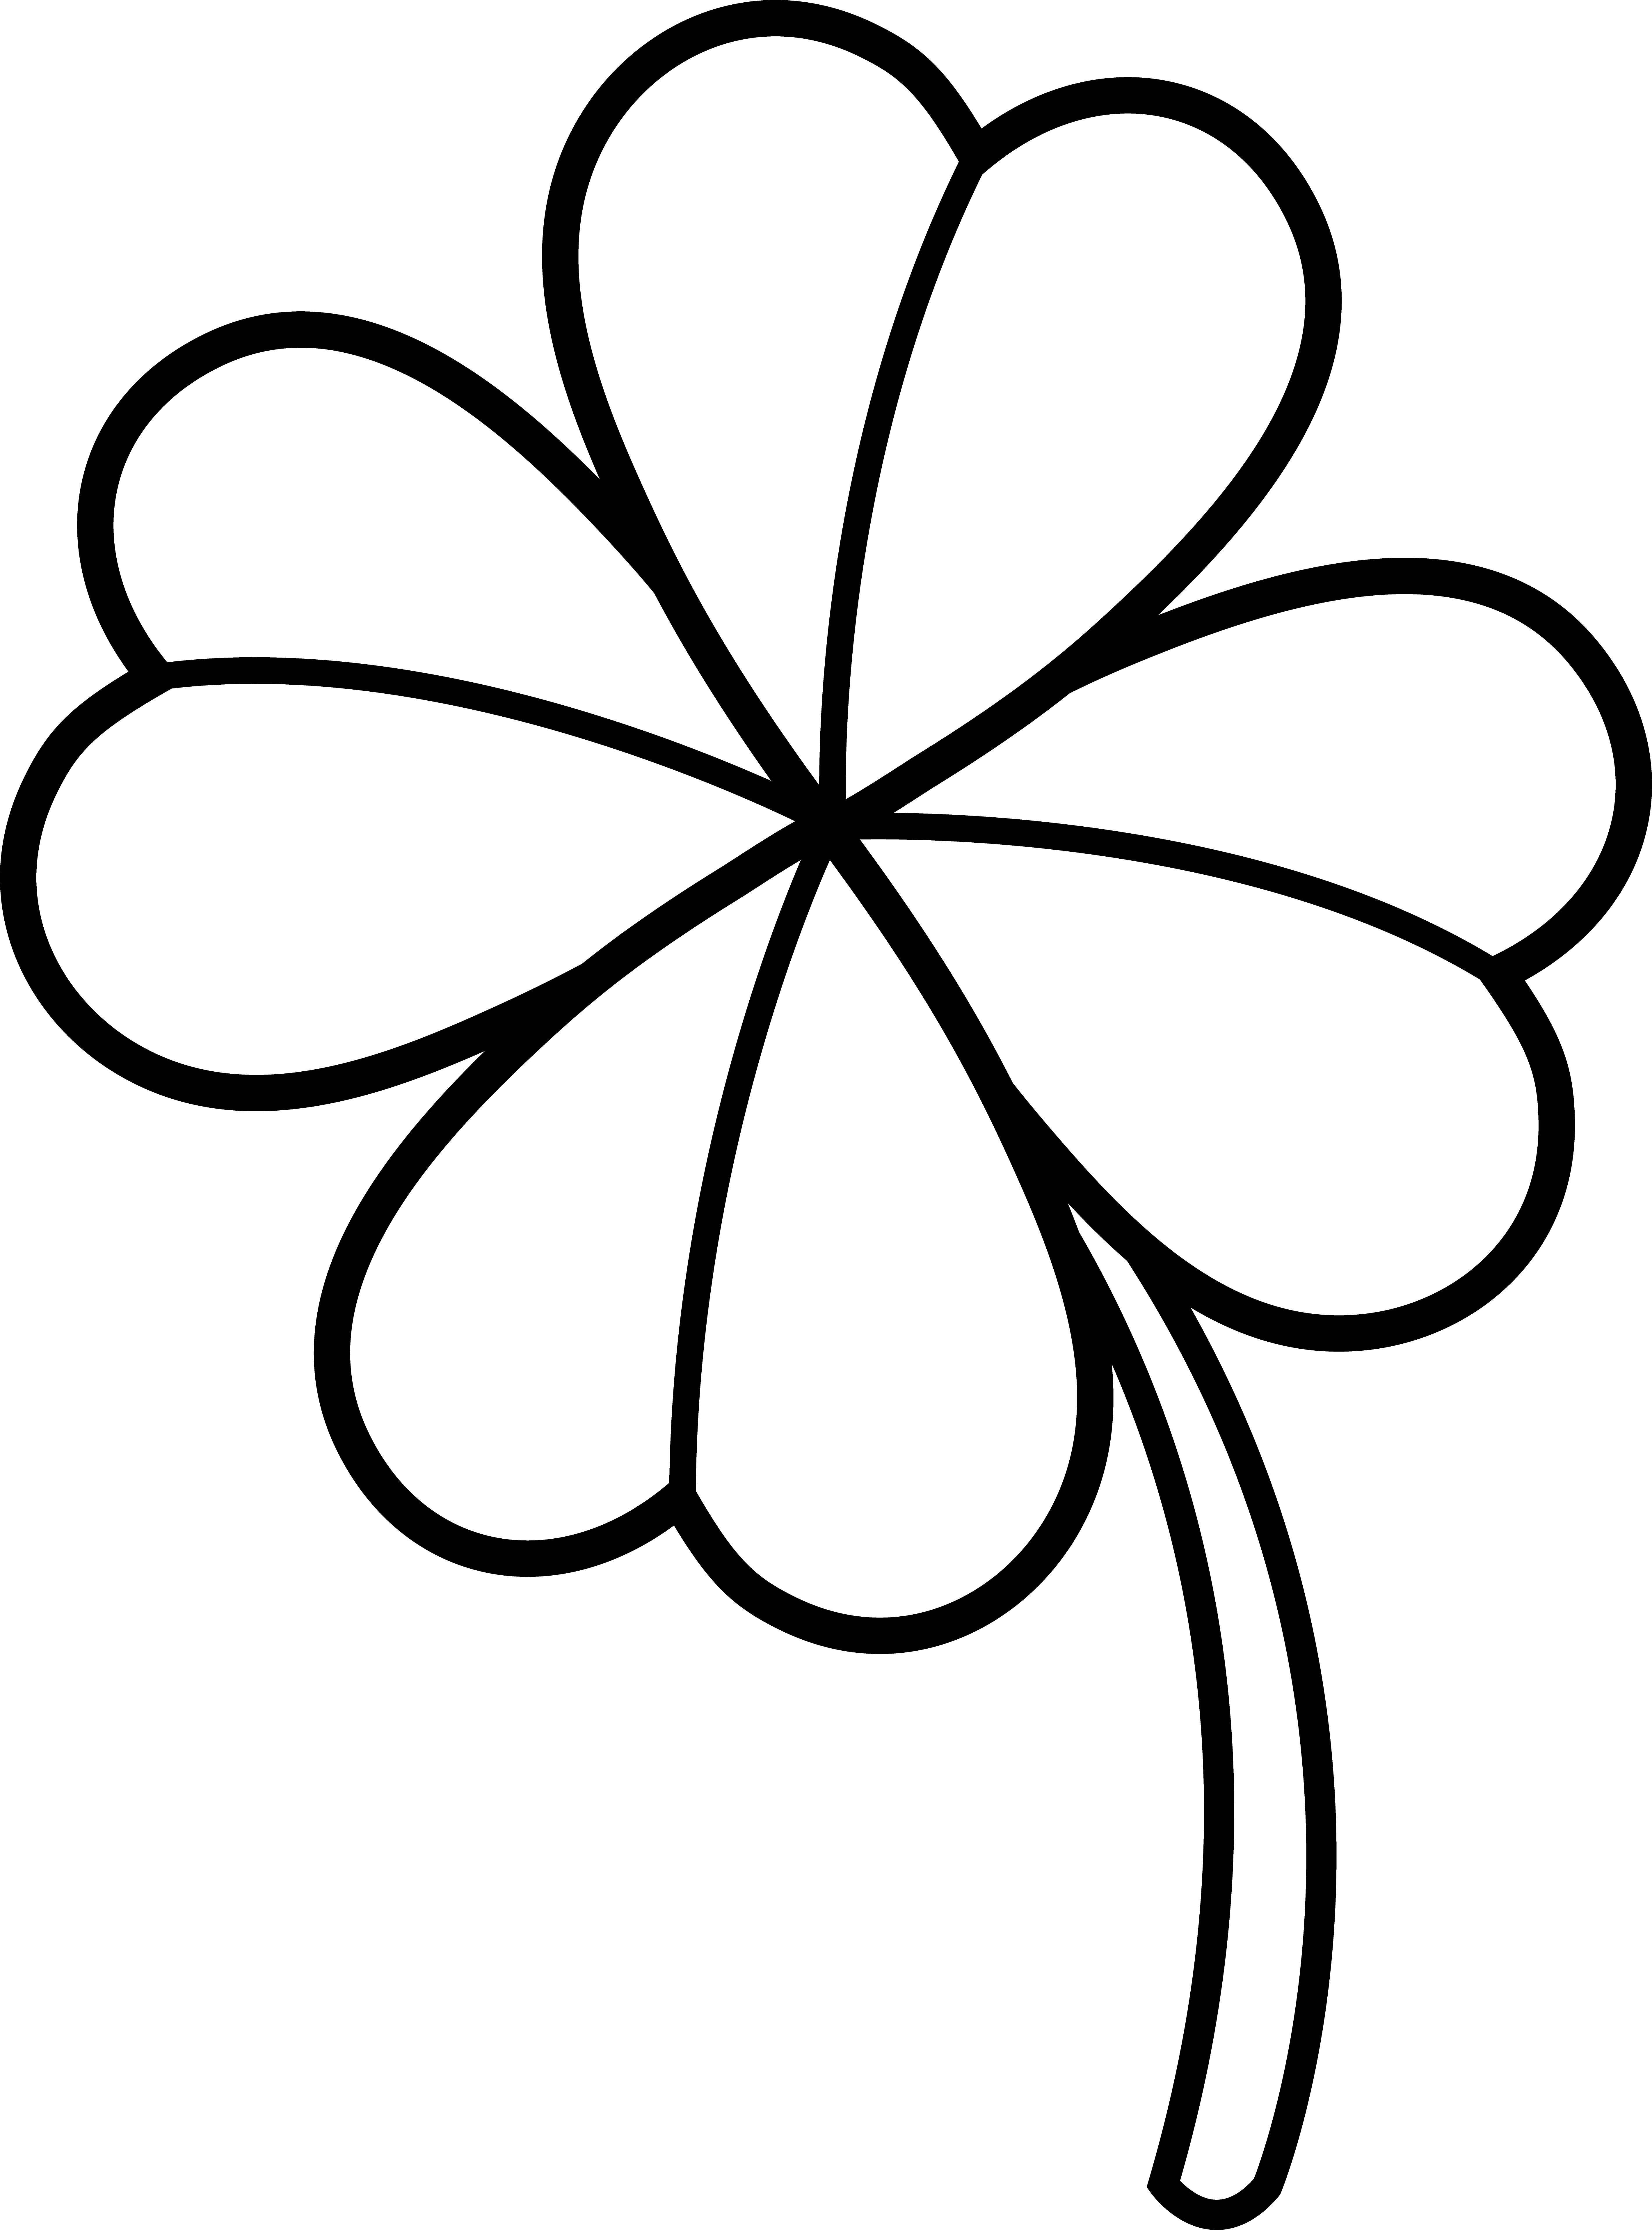 Four Leaf Clover Coloring Pages - Best Coloring Pages For Kids